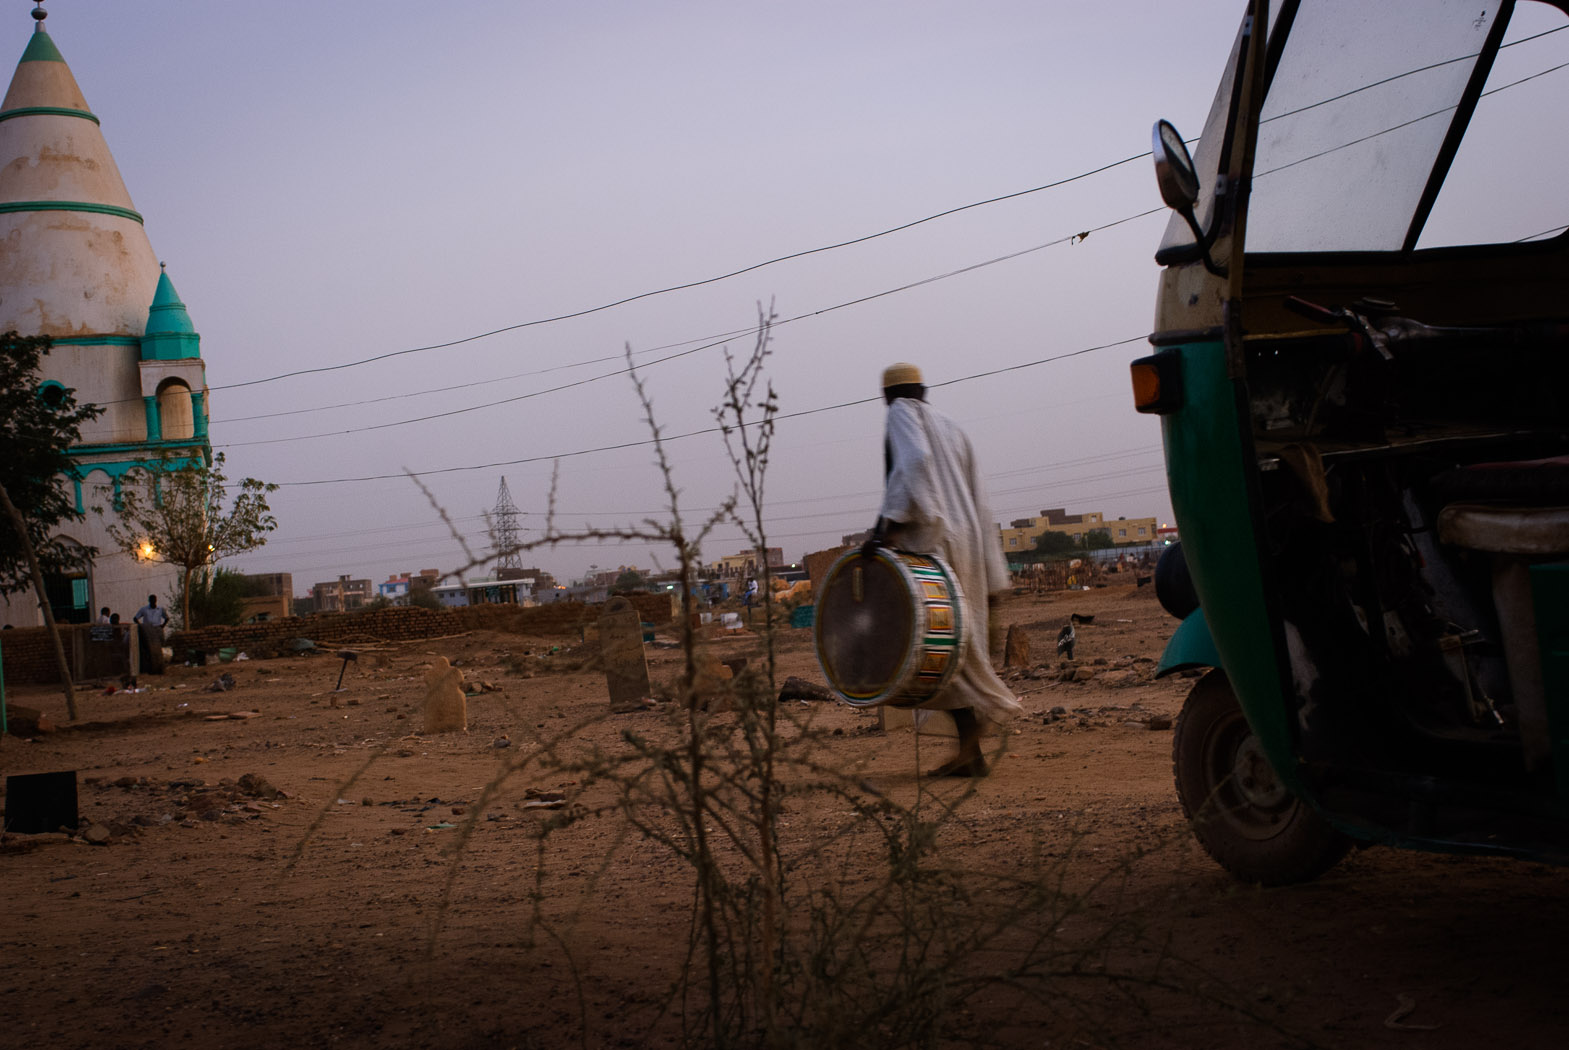 A Sudanese sufi walks with a drum to the Hamid el-Nil mosque in Omdurman.